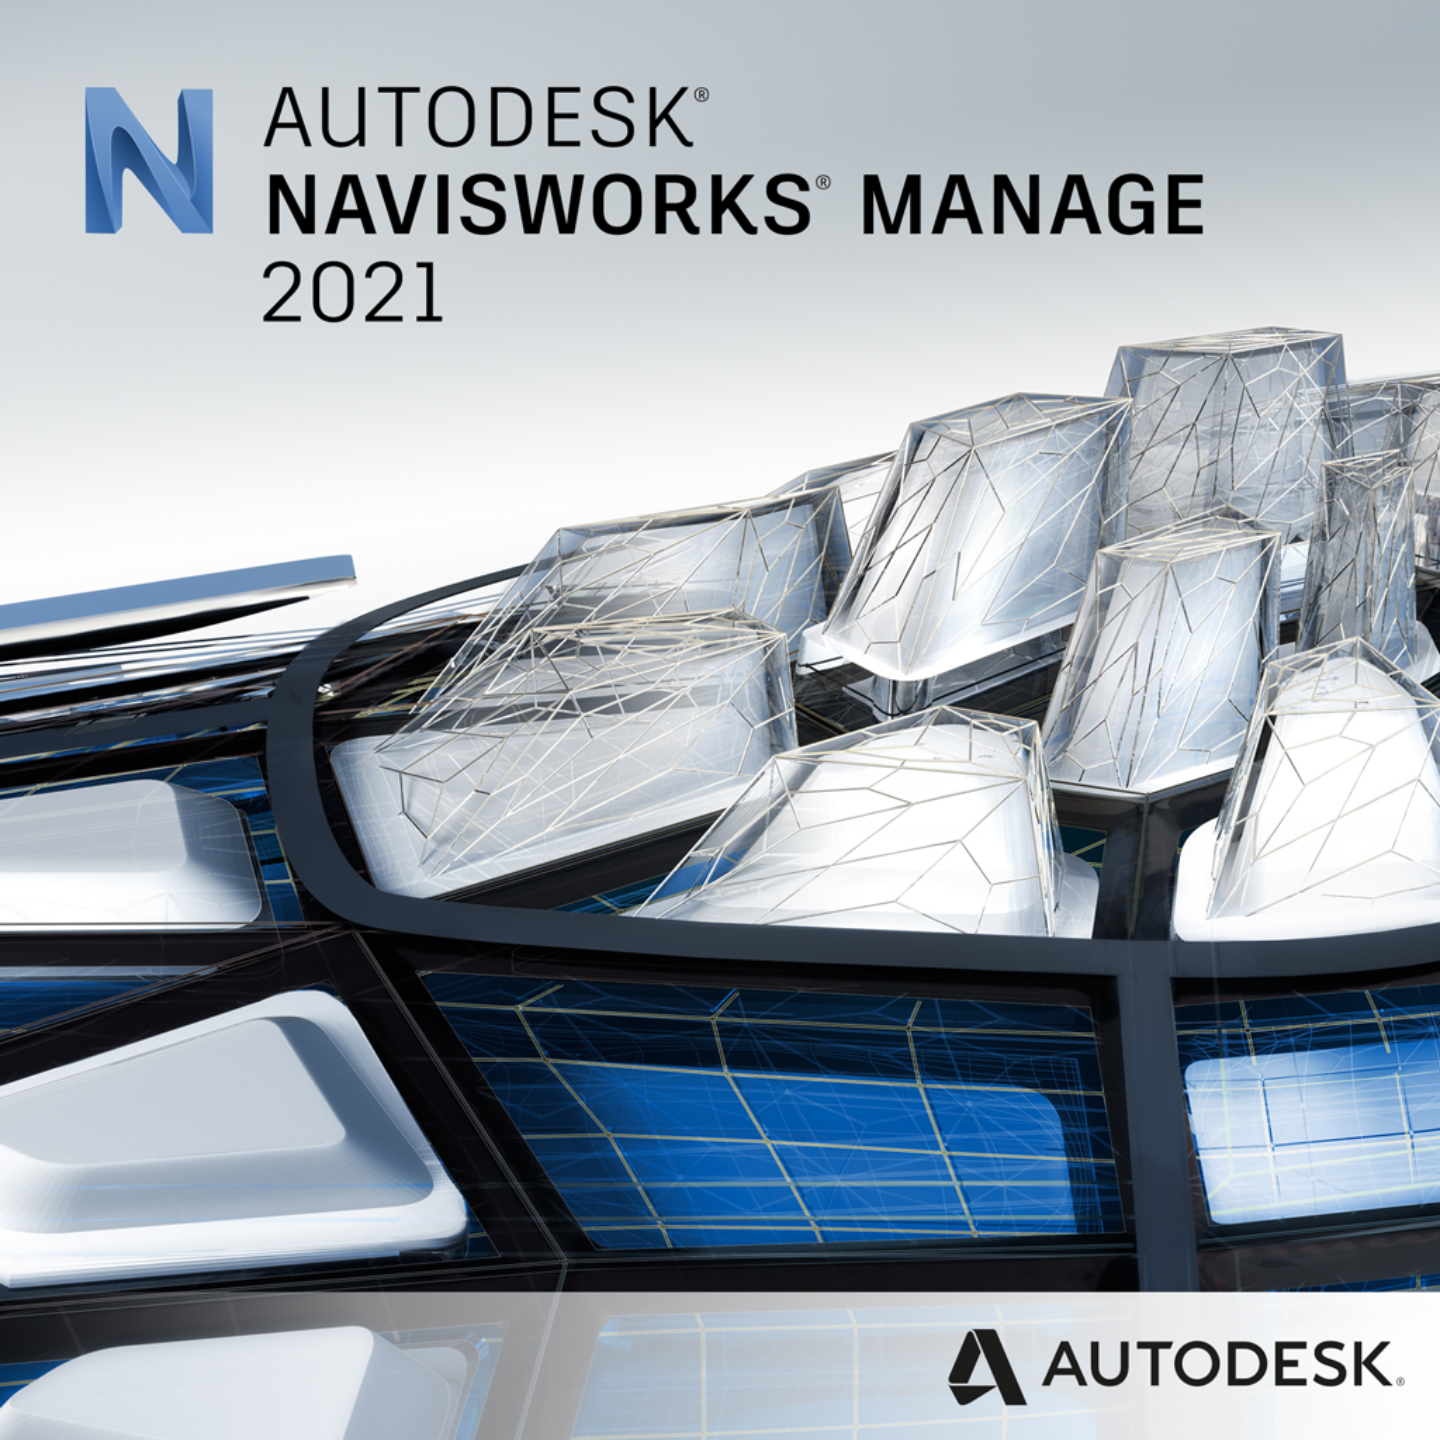 Autodesk Navisworks Manage 2021 (1-Year Subscription)